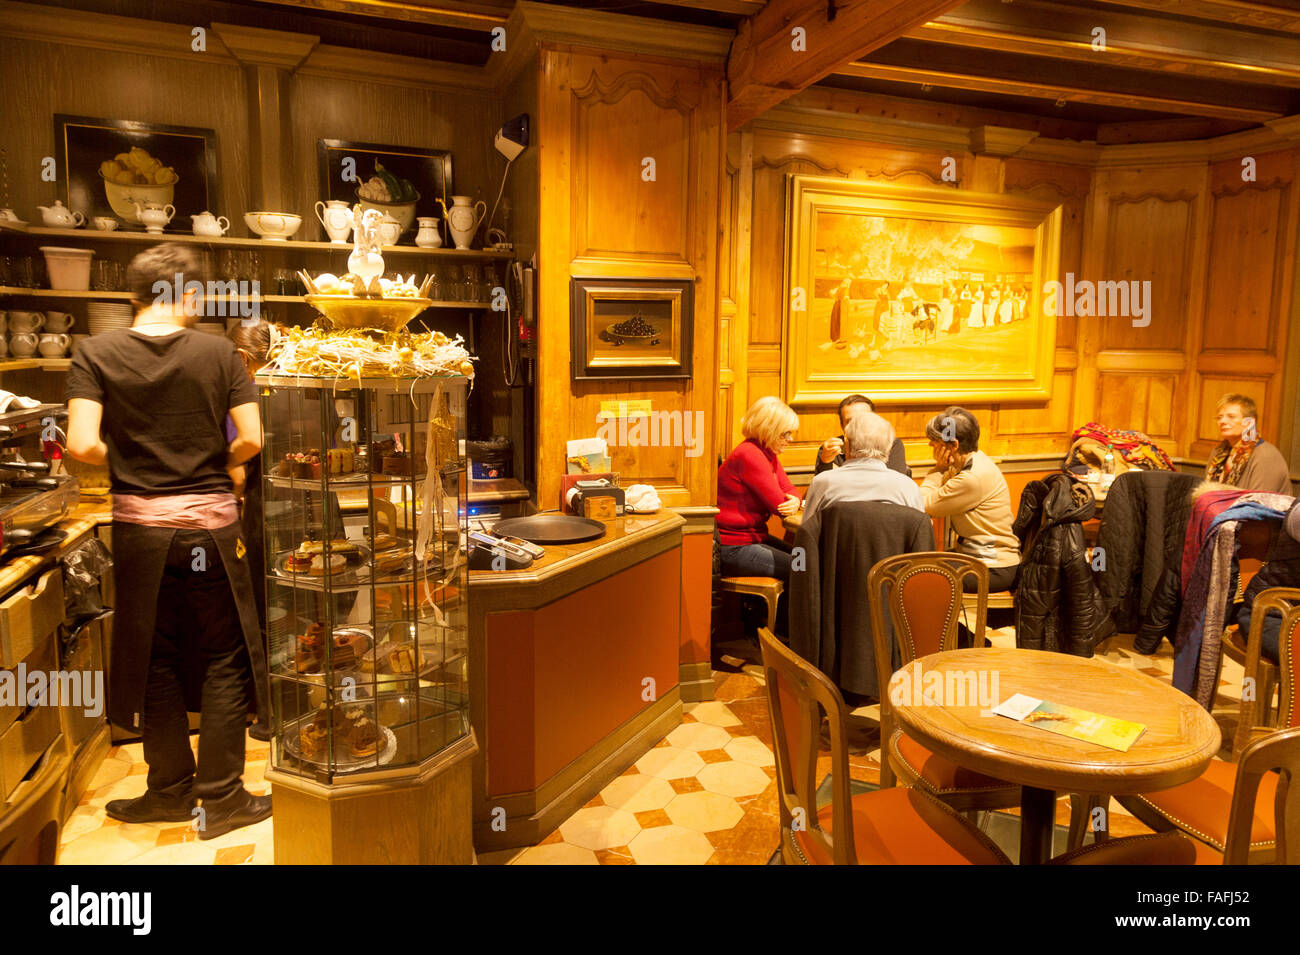 Waiter and customers in the interior of Christian Salon de The ( Tea rooms ), Rue Merciere, Strasbourg, France Europe - Stock Image